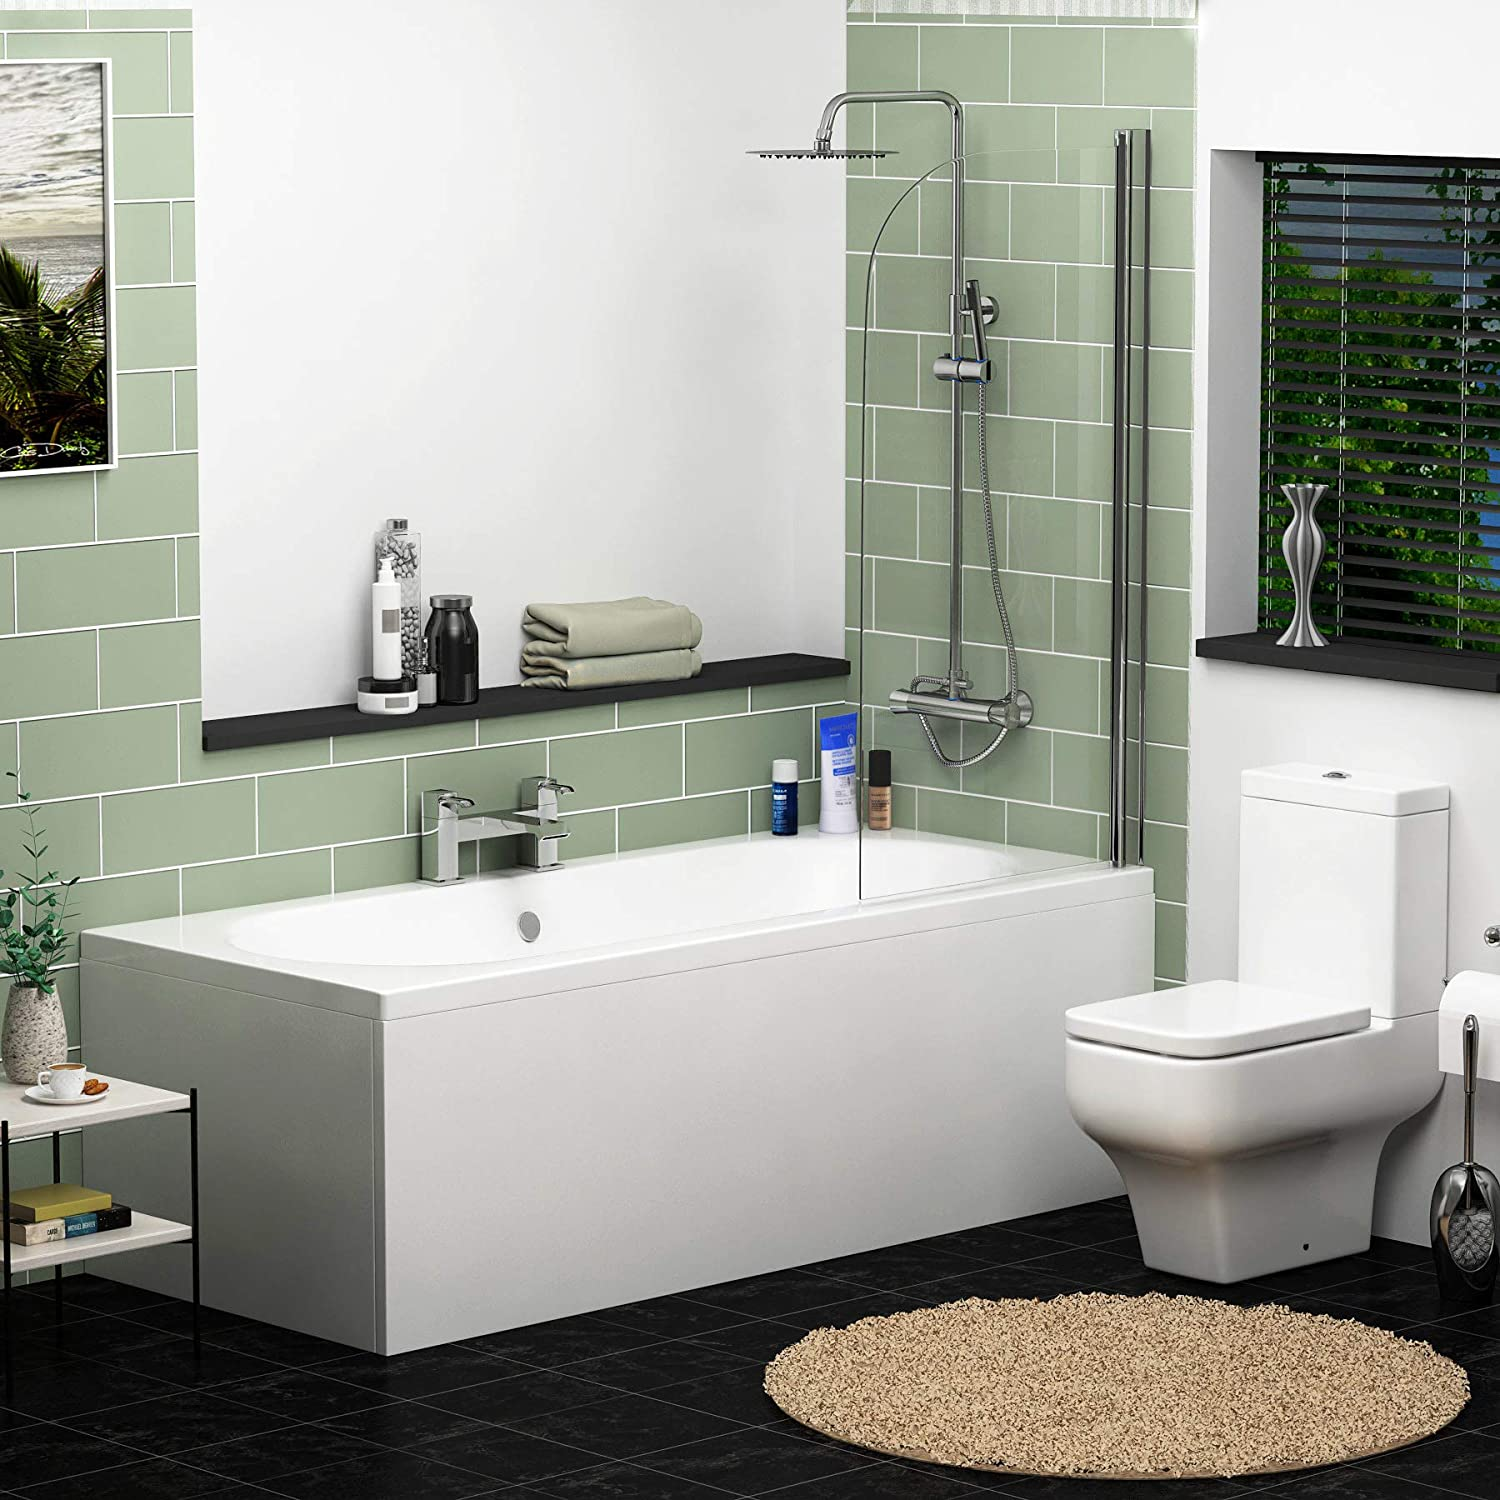 Screen + Front & End Panel 1700 x 700mm Elena 1700 x 700mm Designer Double Ended Acrylic Bath with Front Panel Straight Bathroom Bathtub